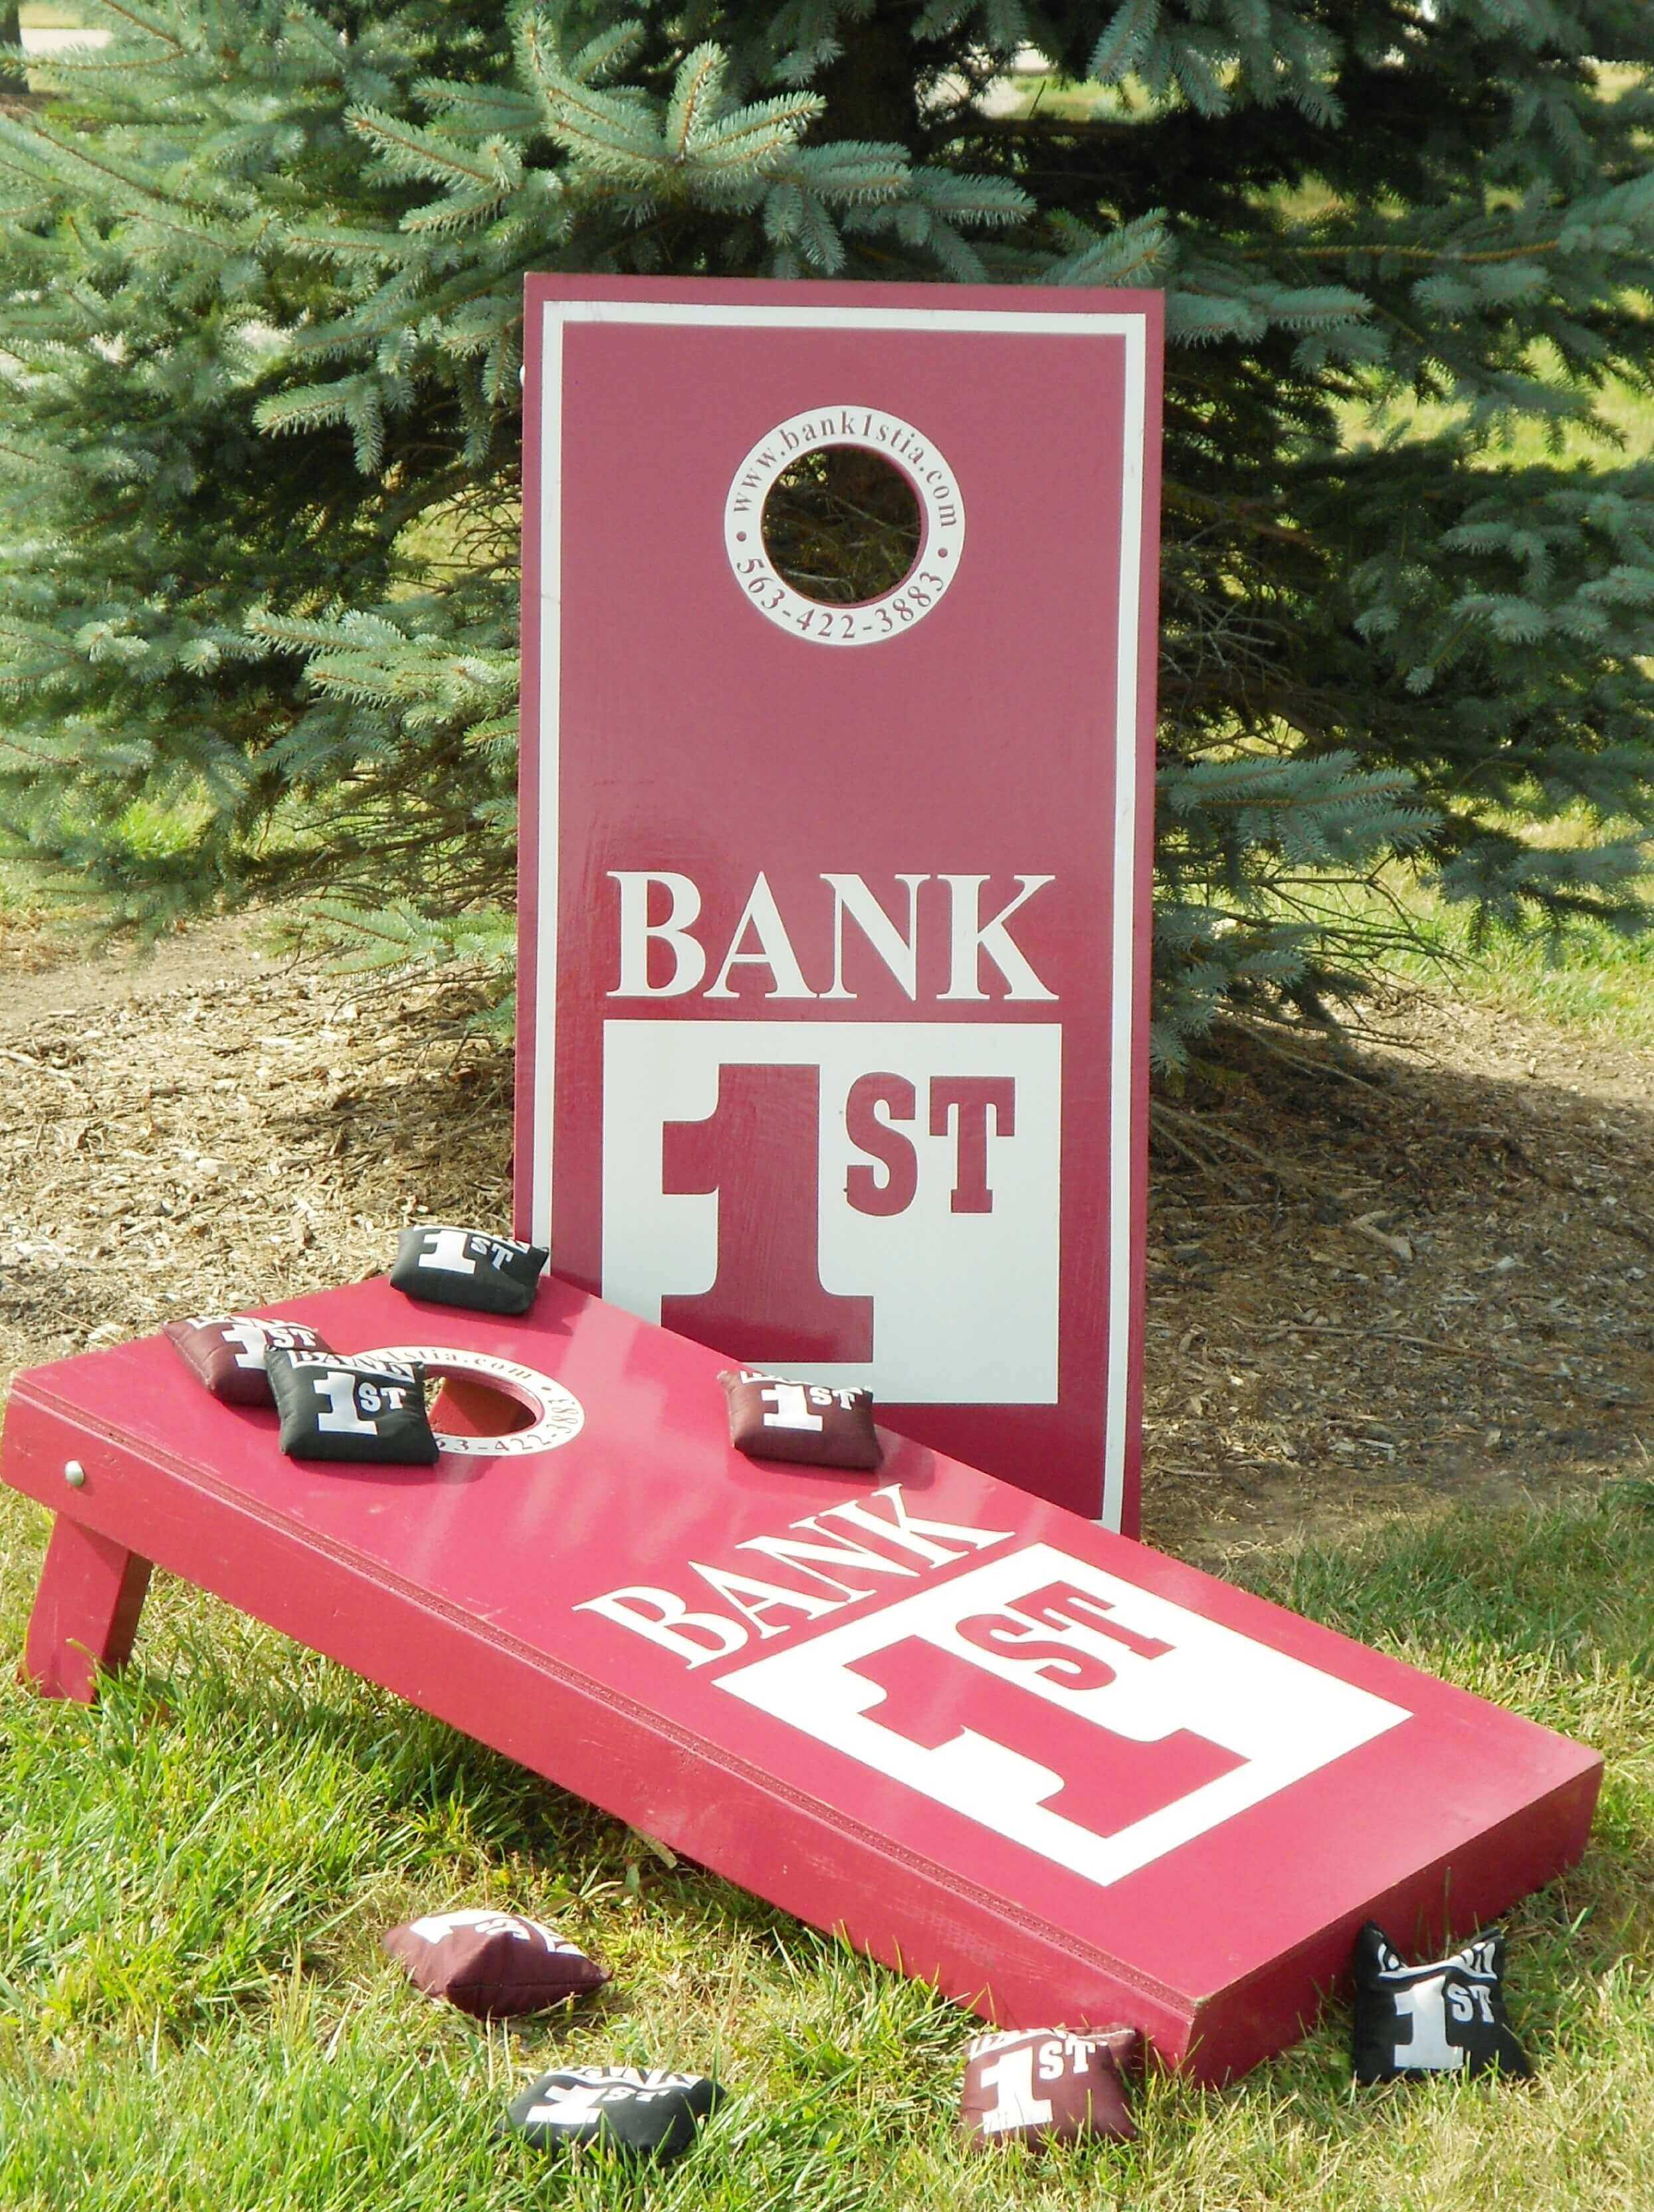 Bank 1st Bean Bag Boards